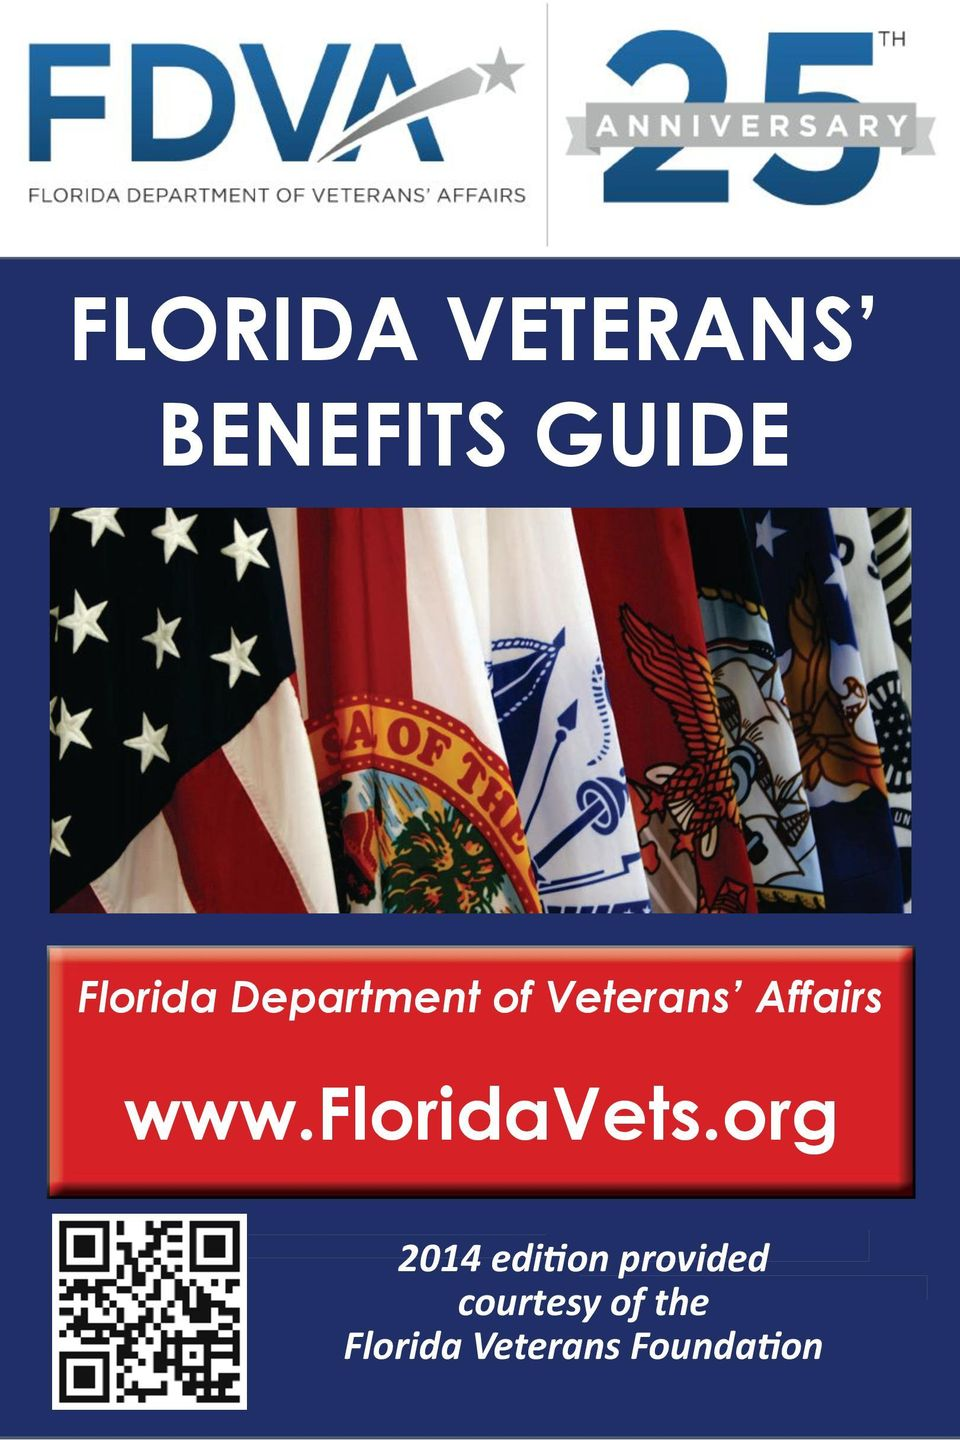 org 2014 edition provided 2011 Edition courtesy of the Florida Veterans